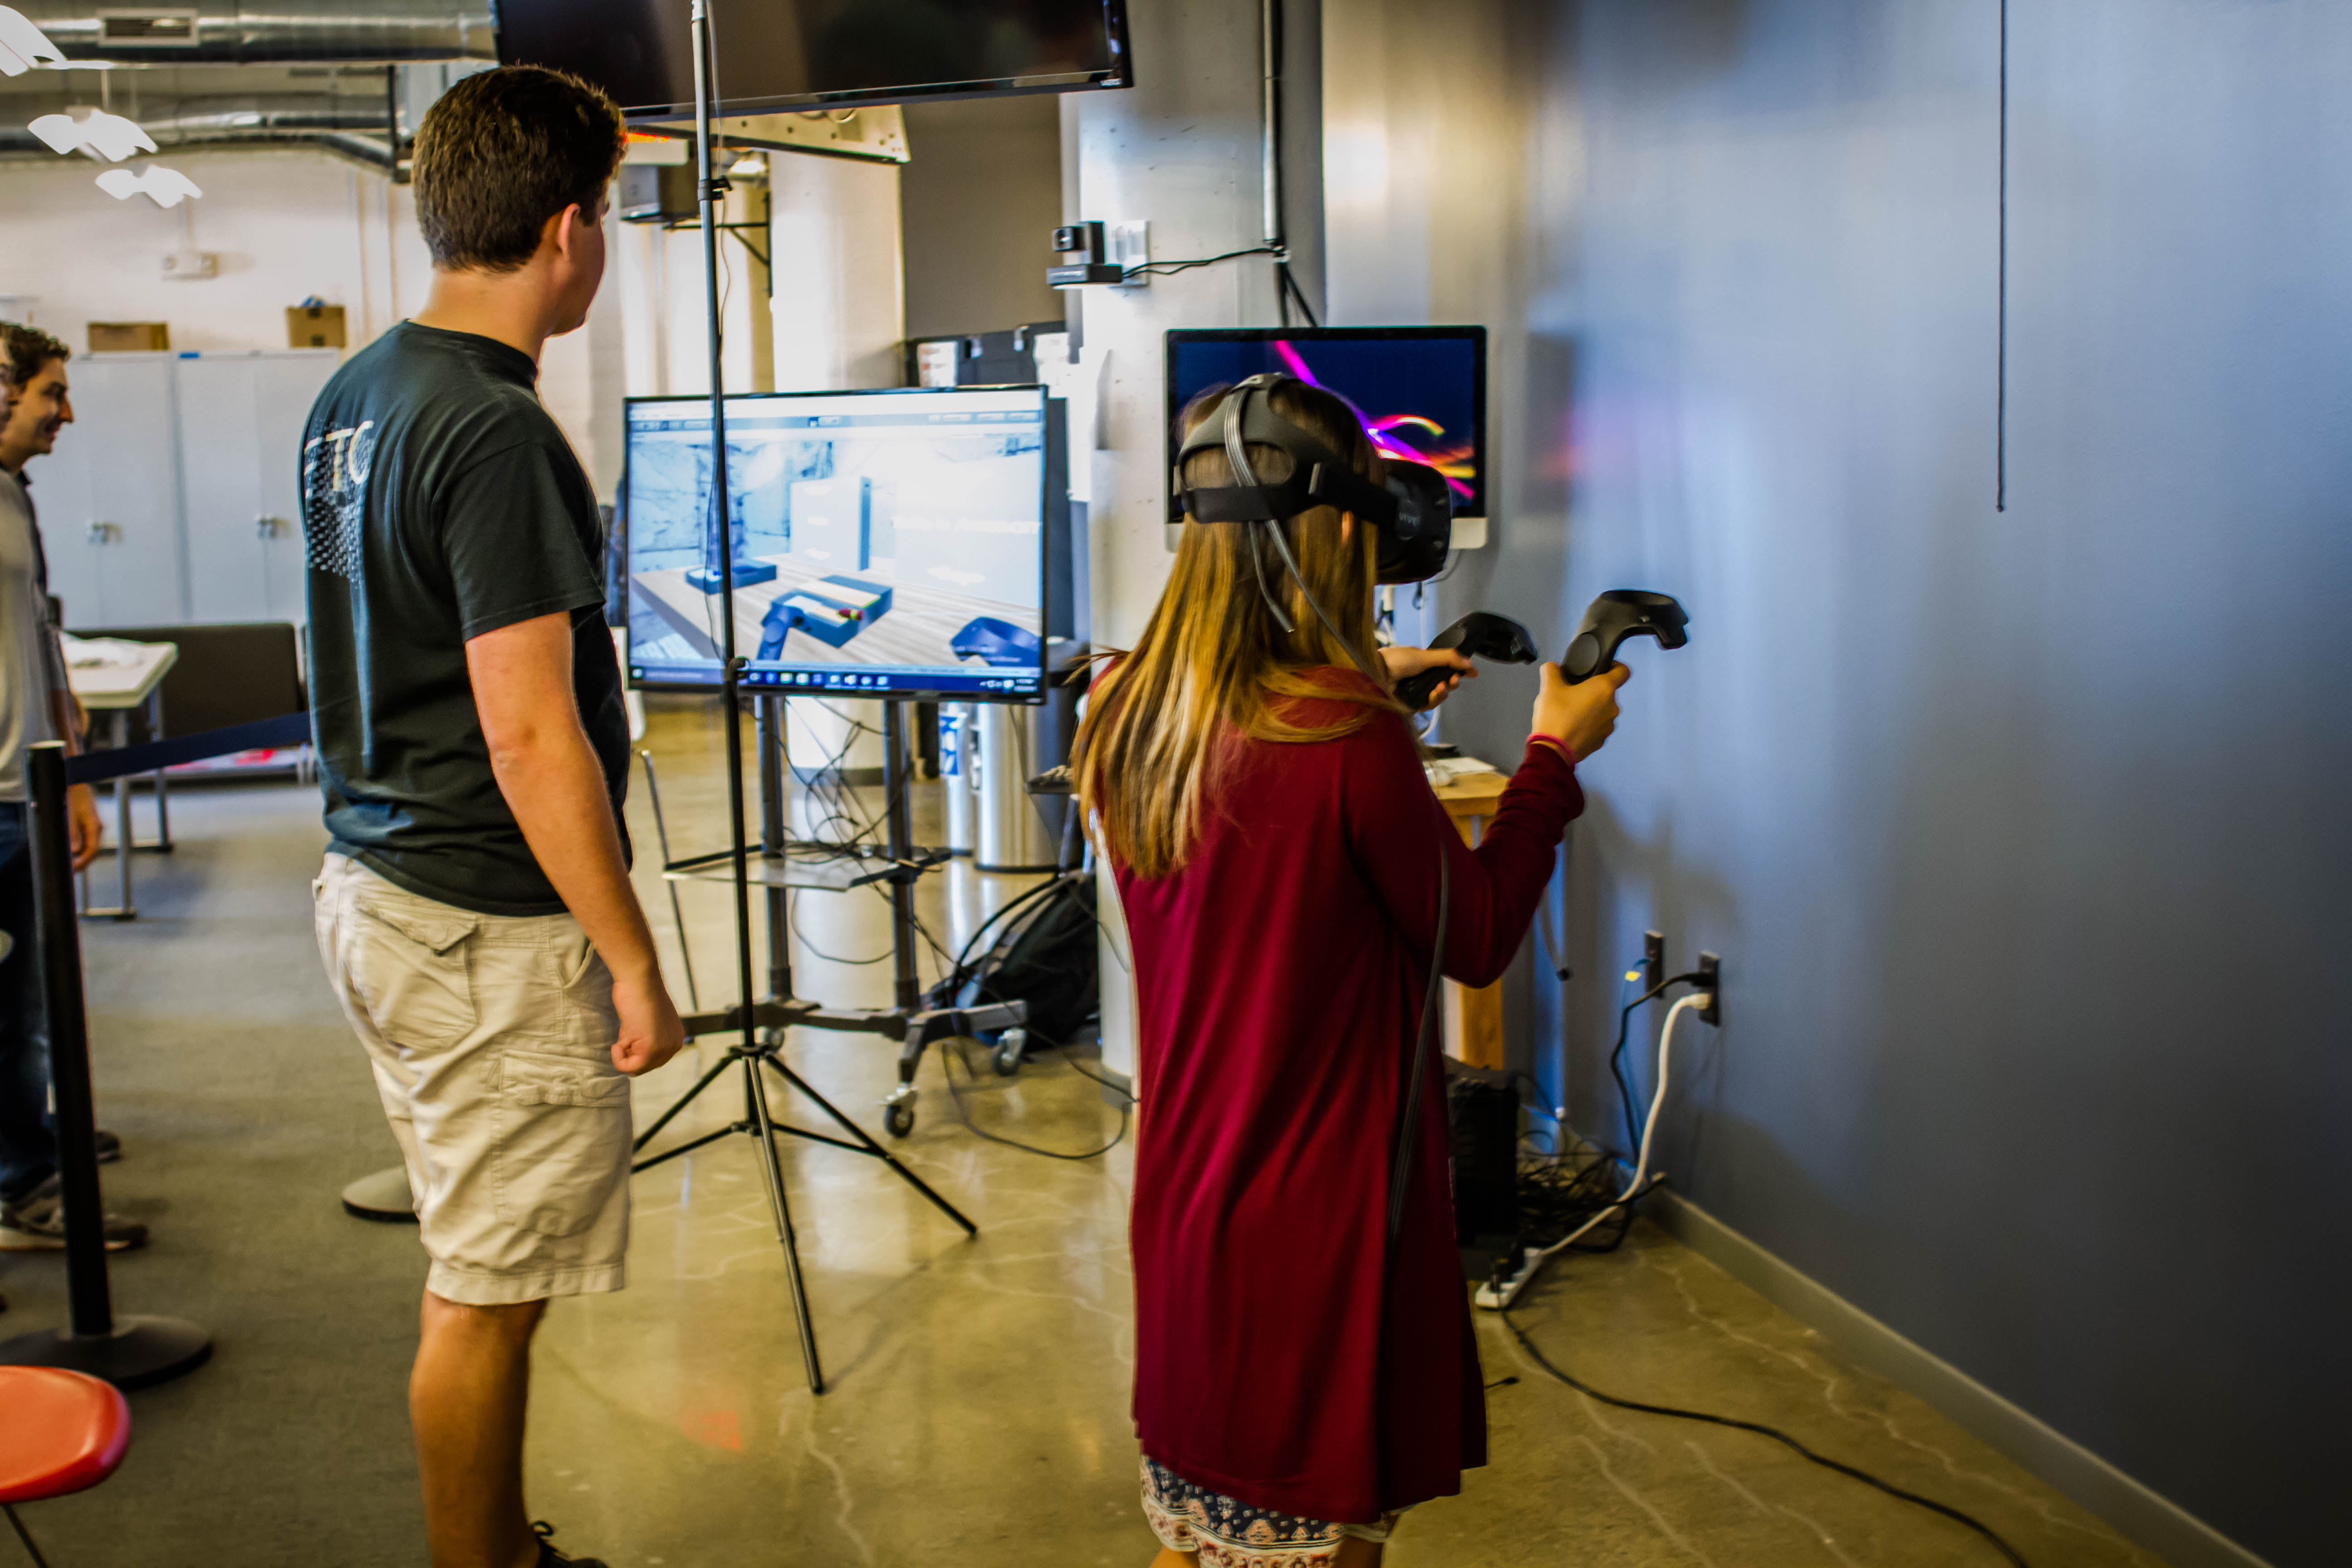 A team of Twilio employees produced a hack that allowed programming through virtual reality.